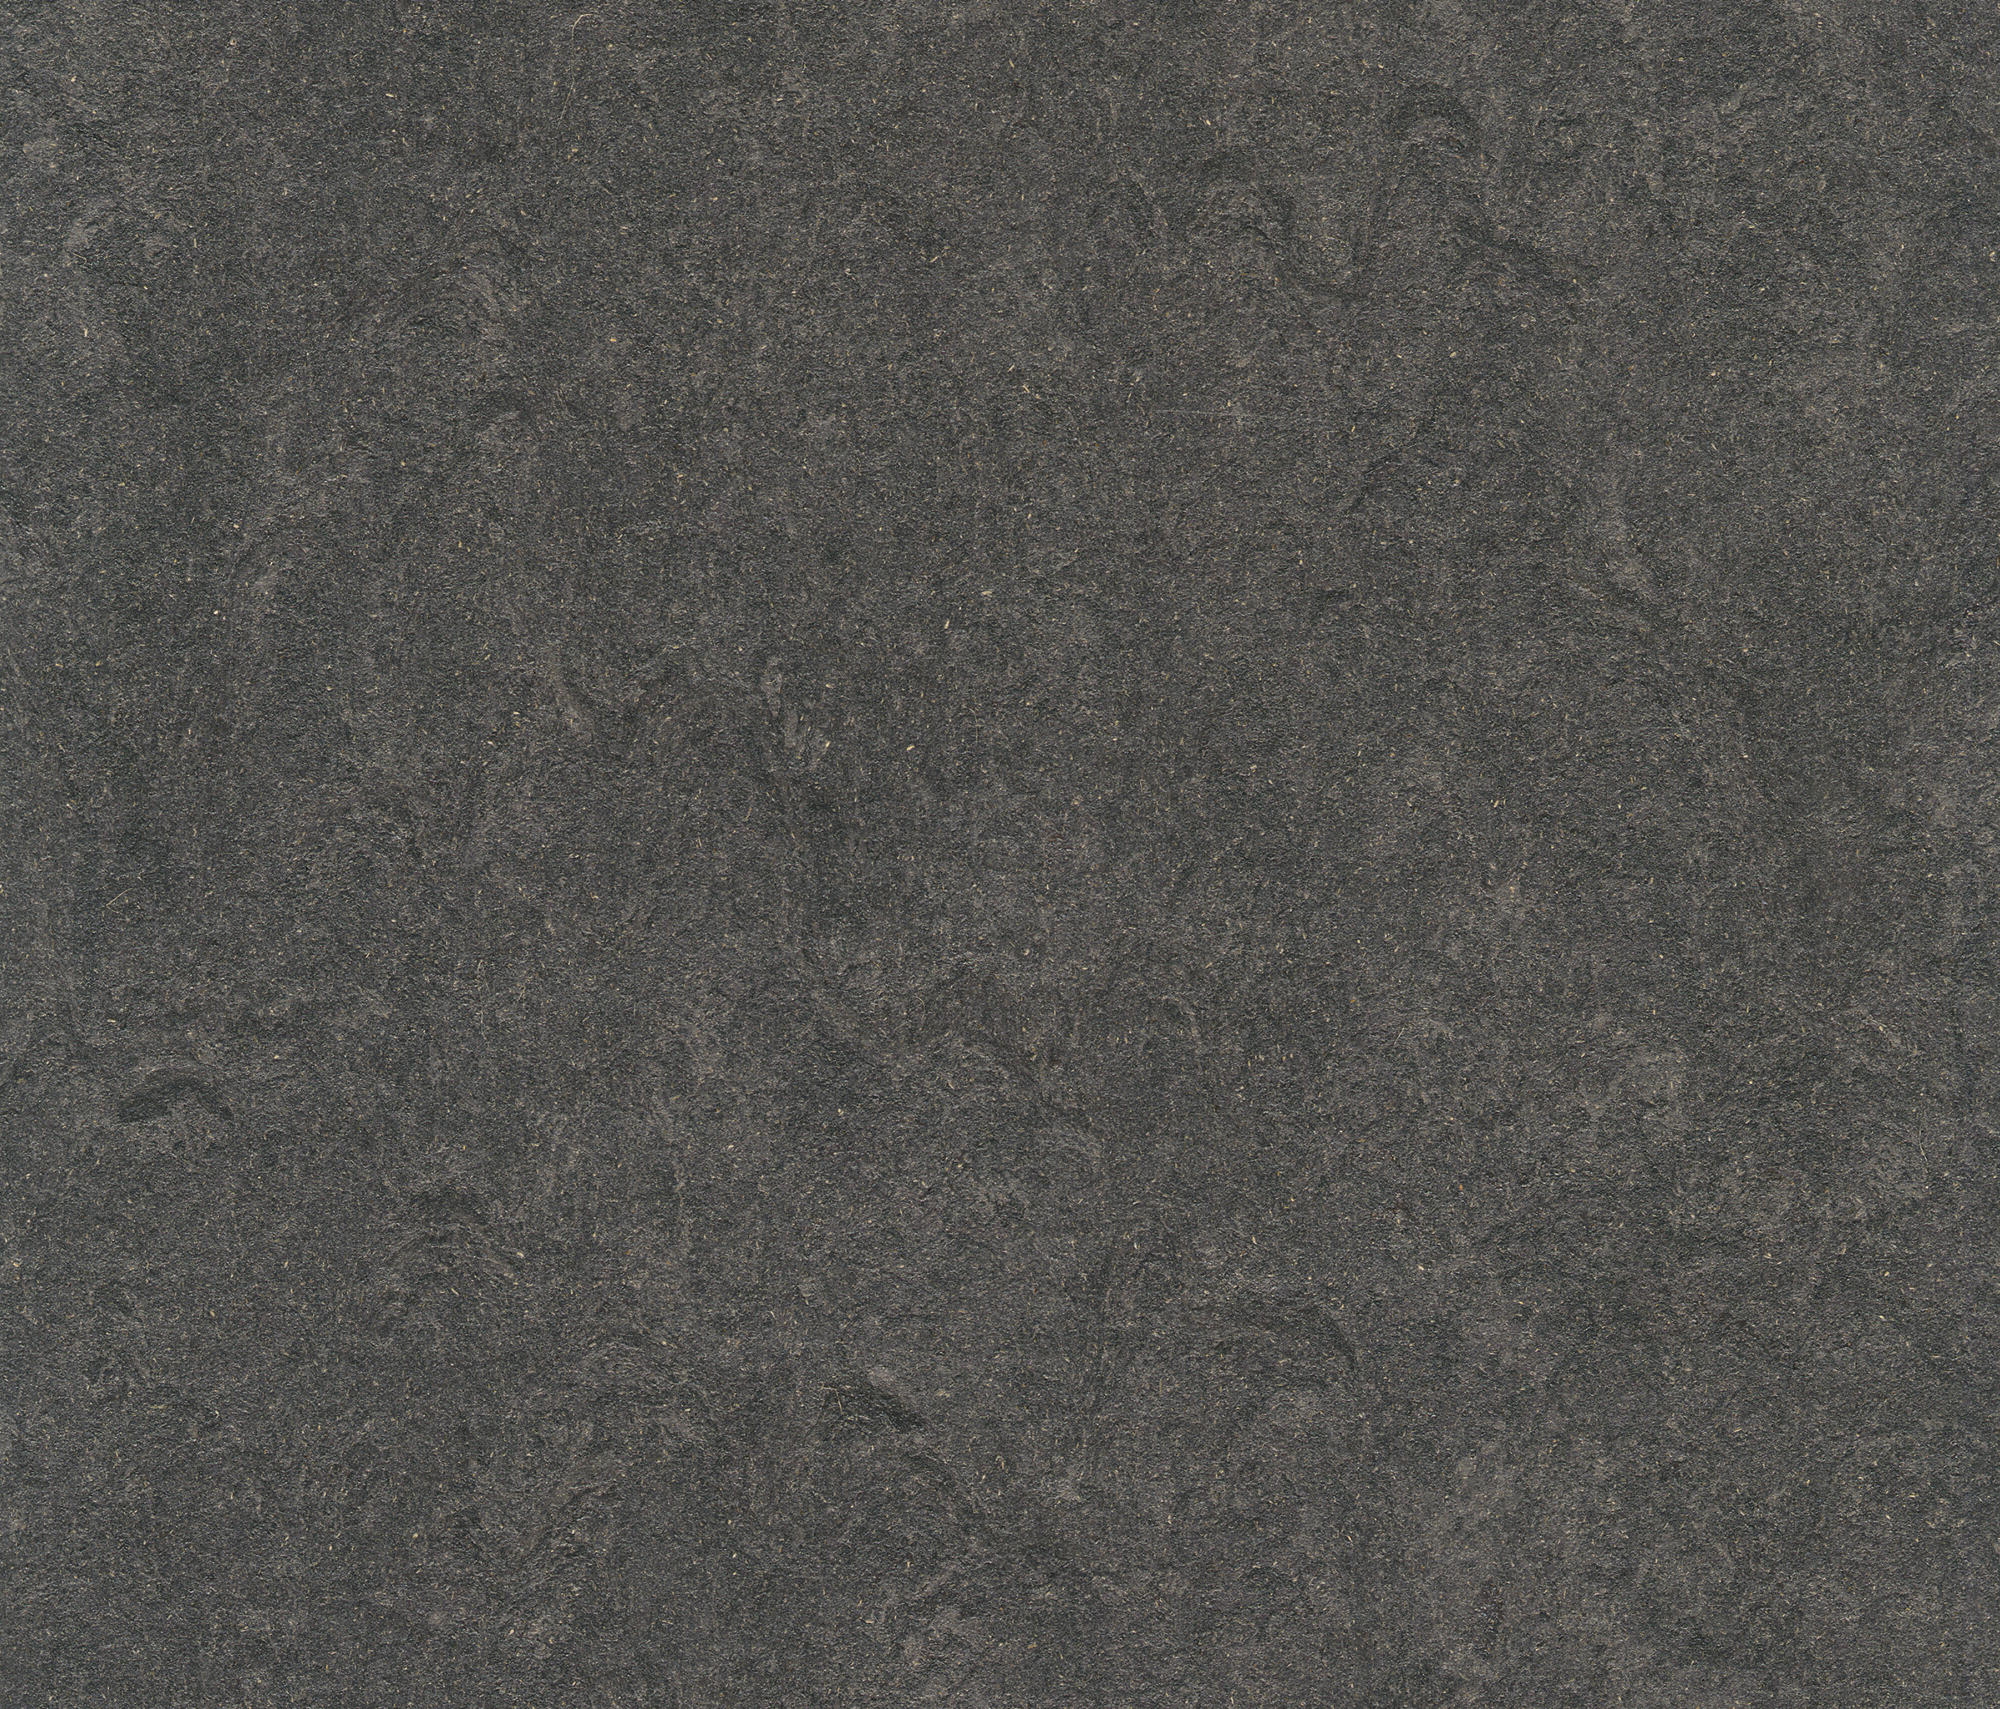 marmorette lpx 121 160 linoleum flooring from armstrong architonic. Black Bedroom Furniture Sets. Home Design Ideas